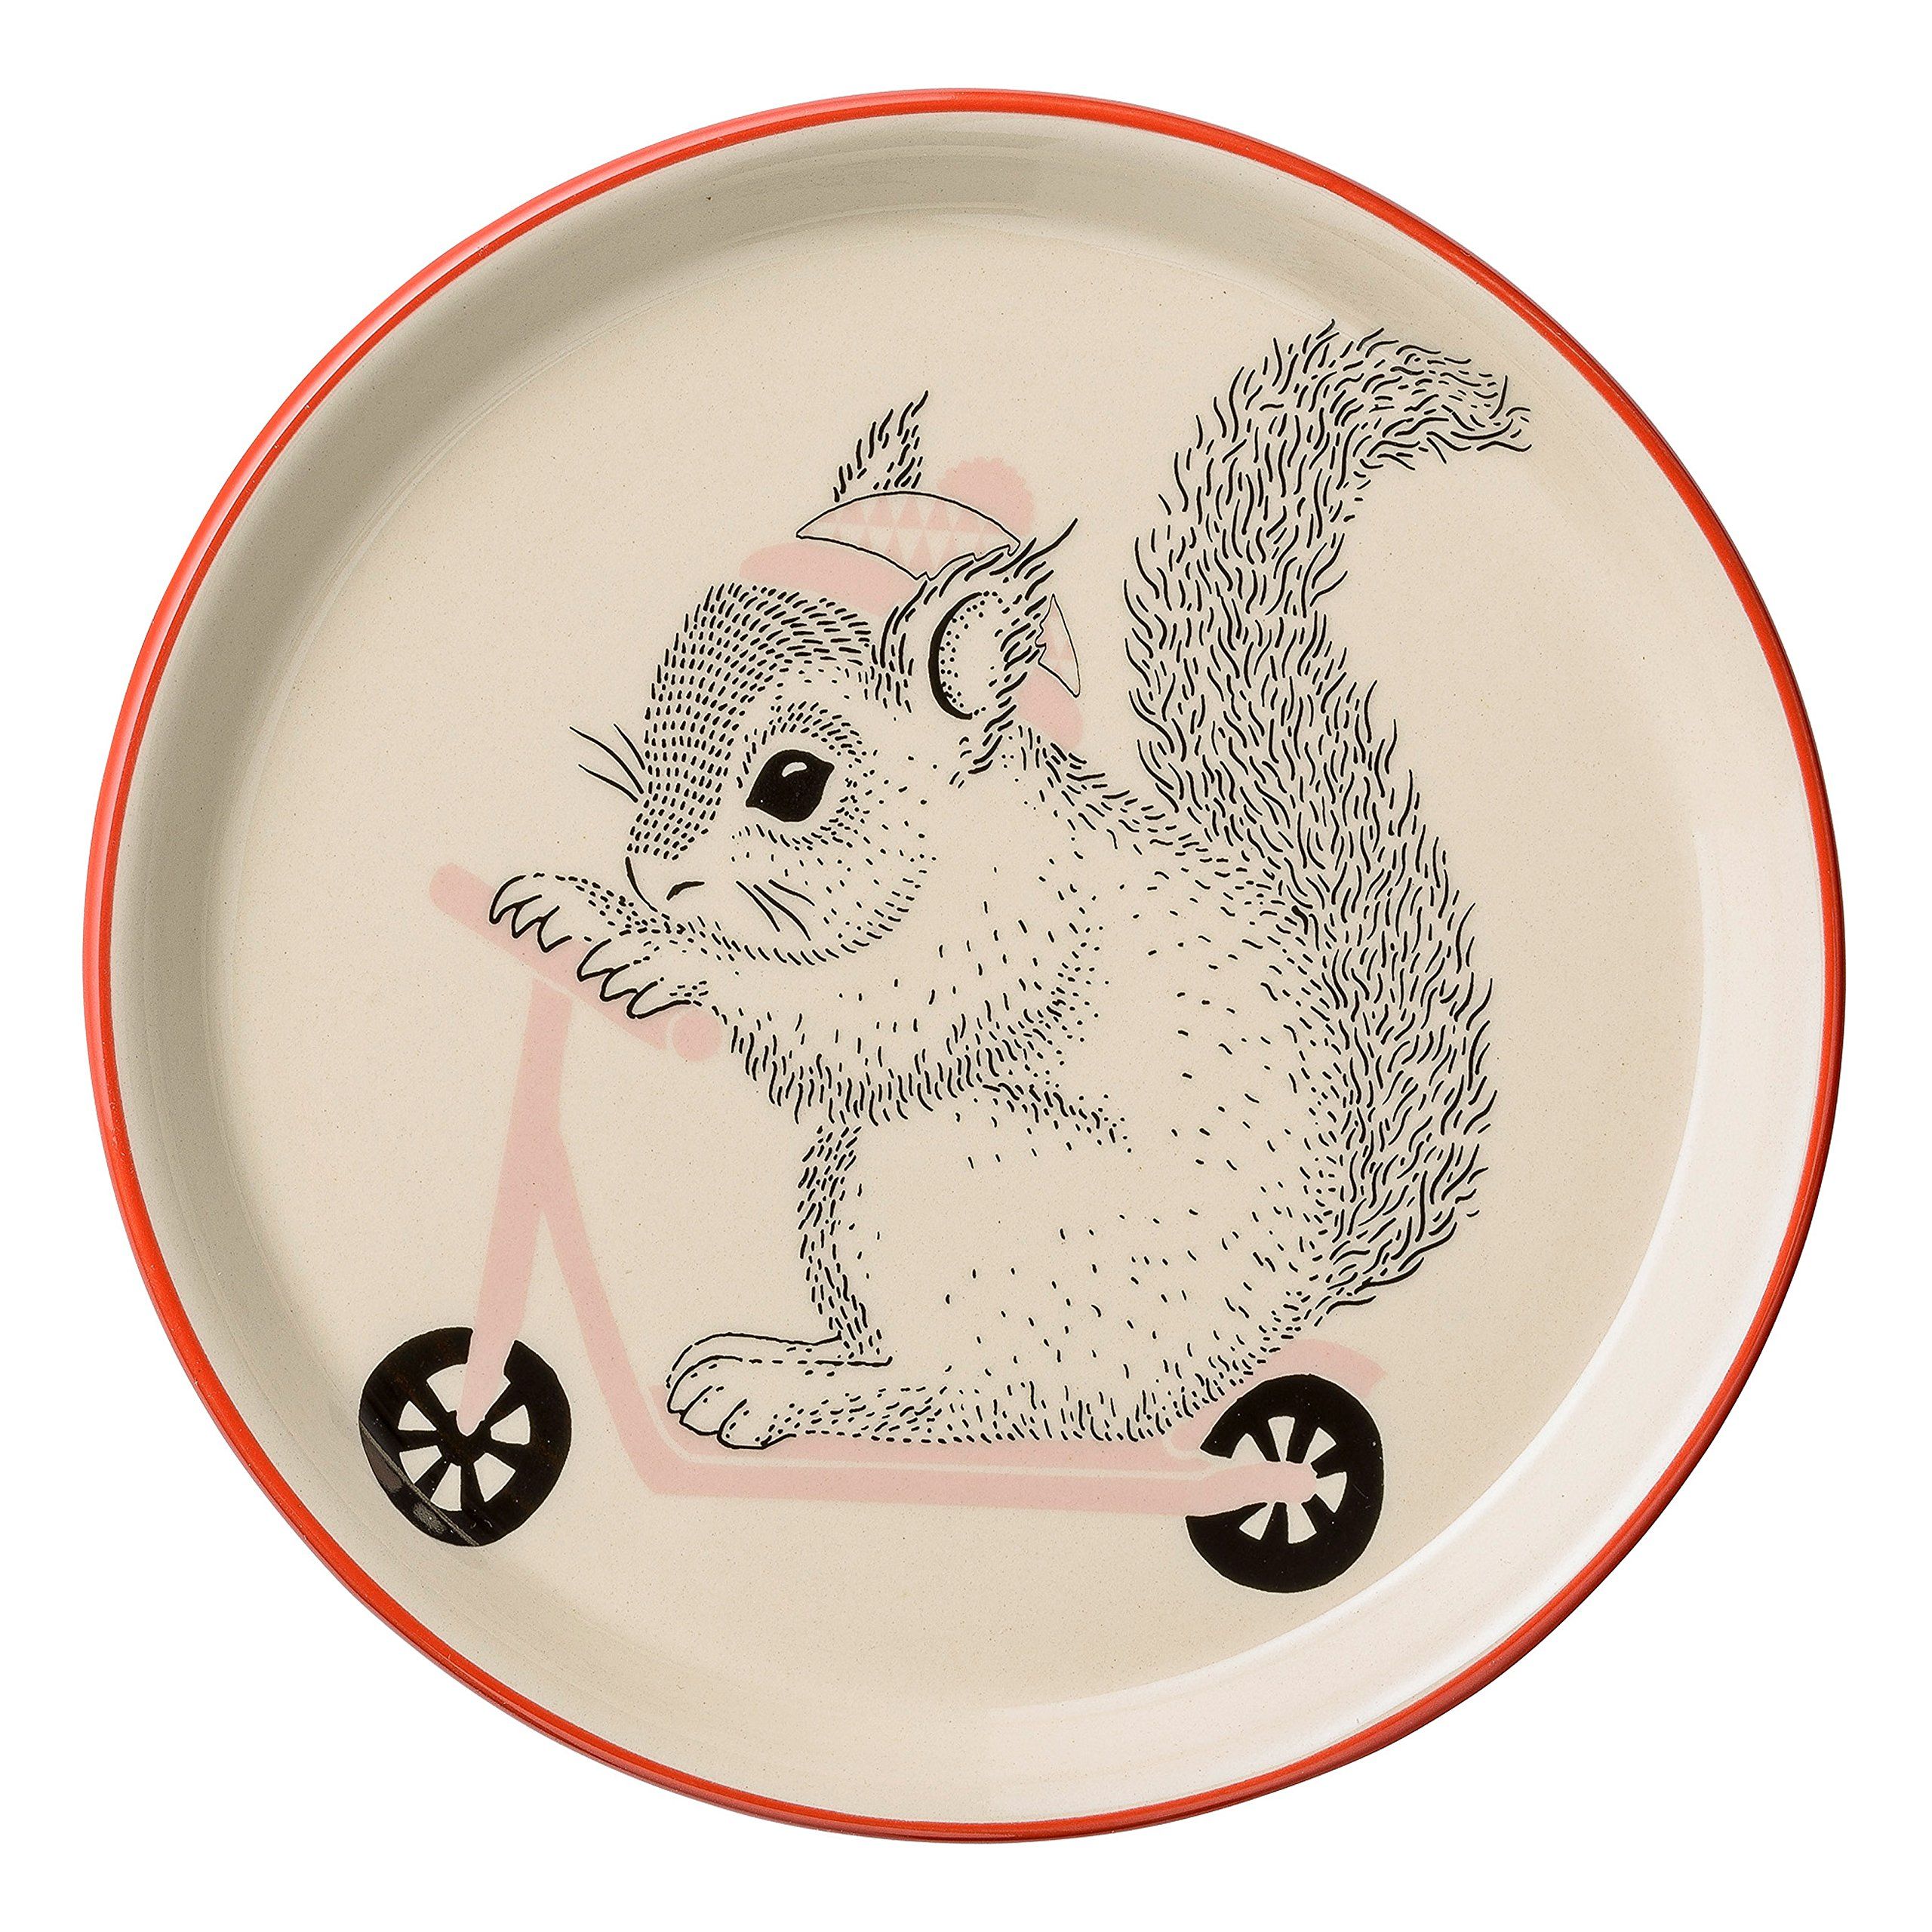 Bloomingville A21100624 Ceramic Mollie Plate with Squirrel, Multicolor